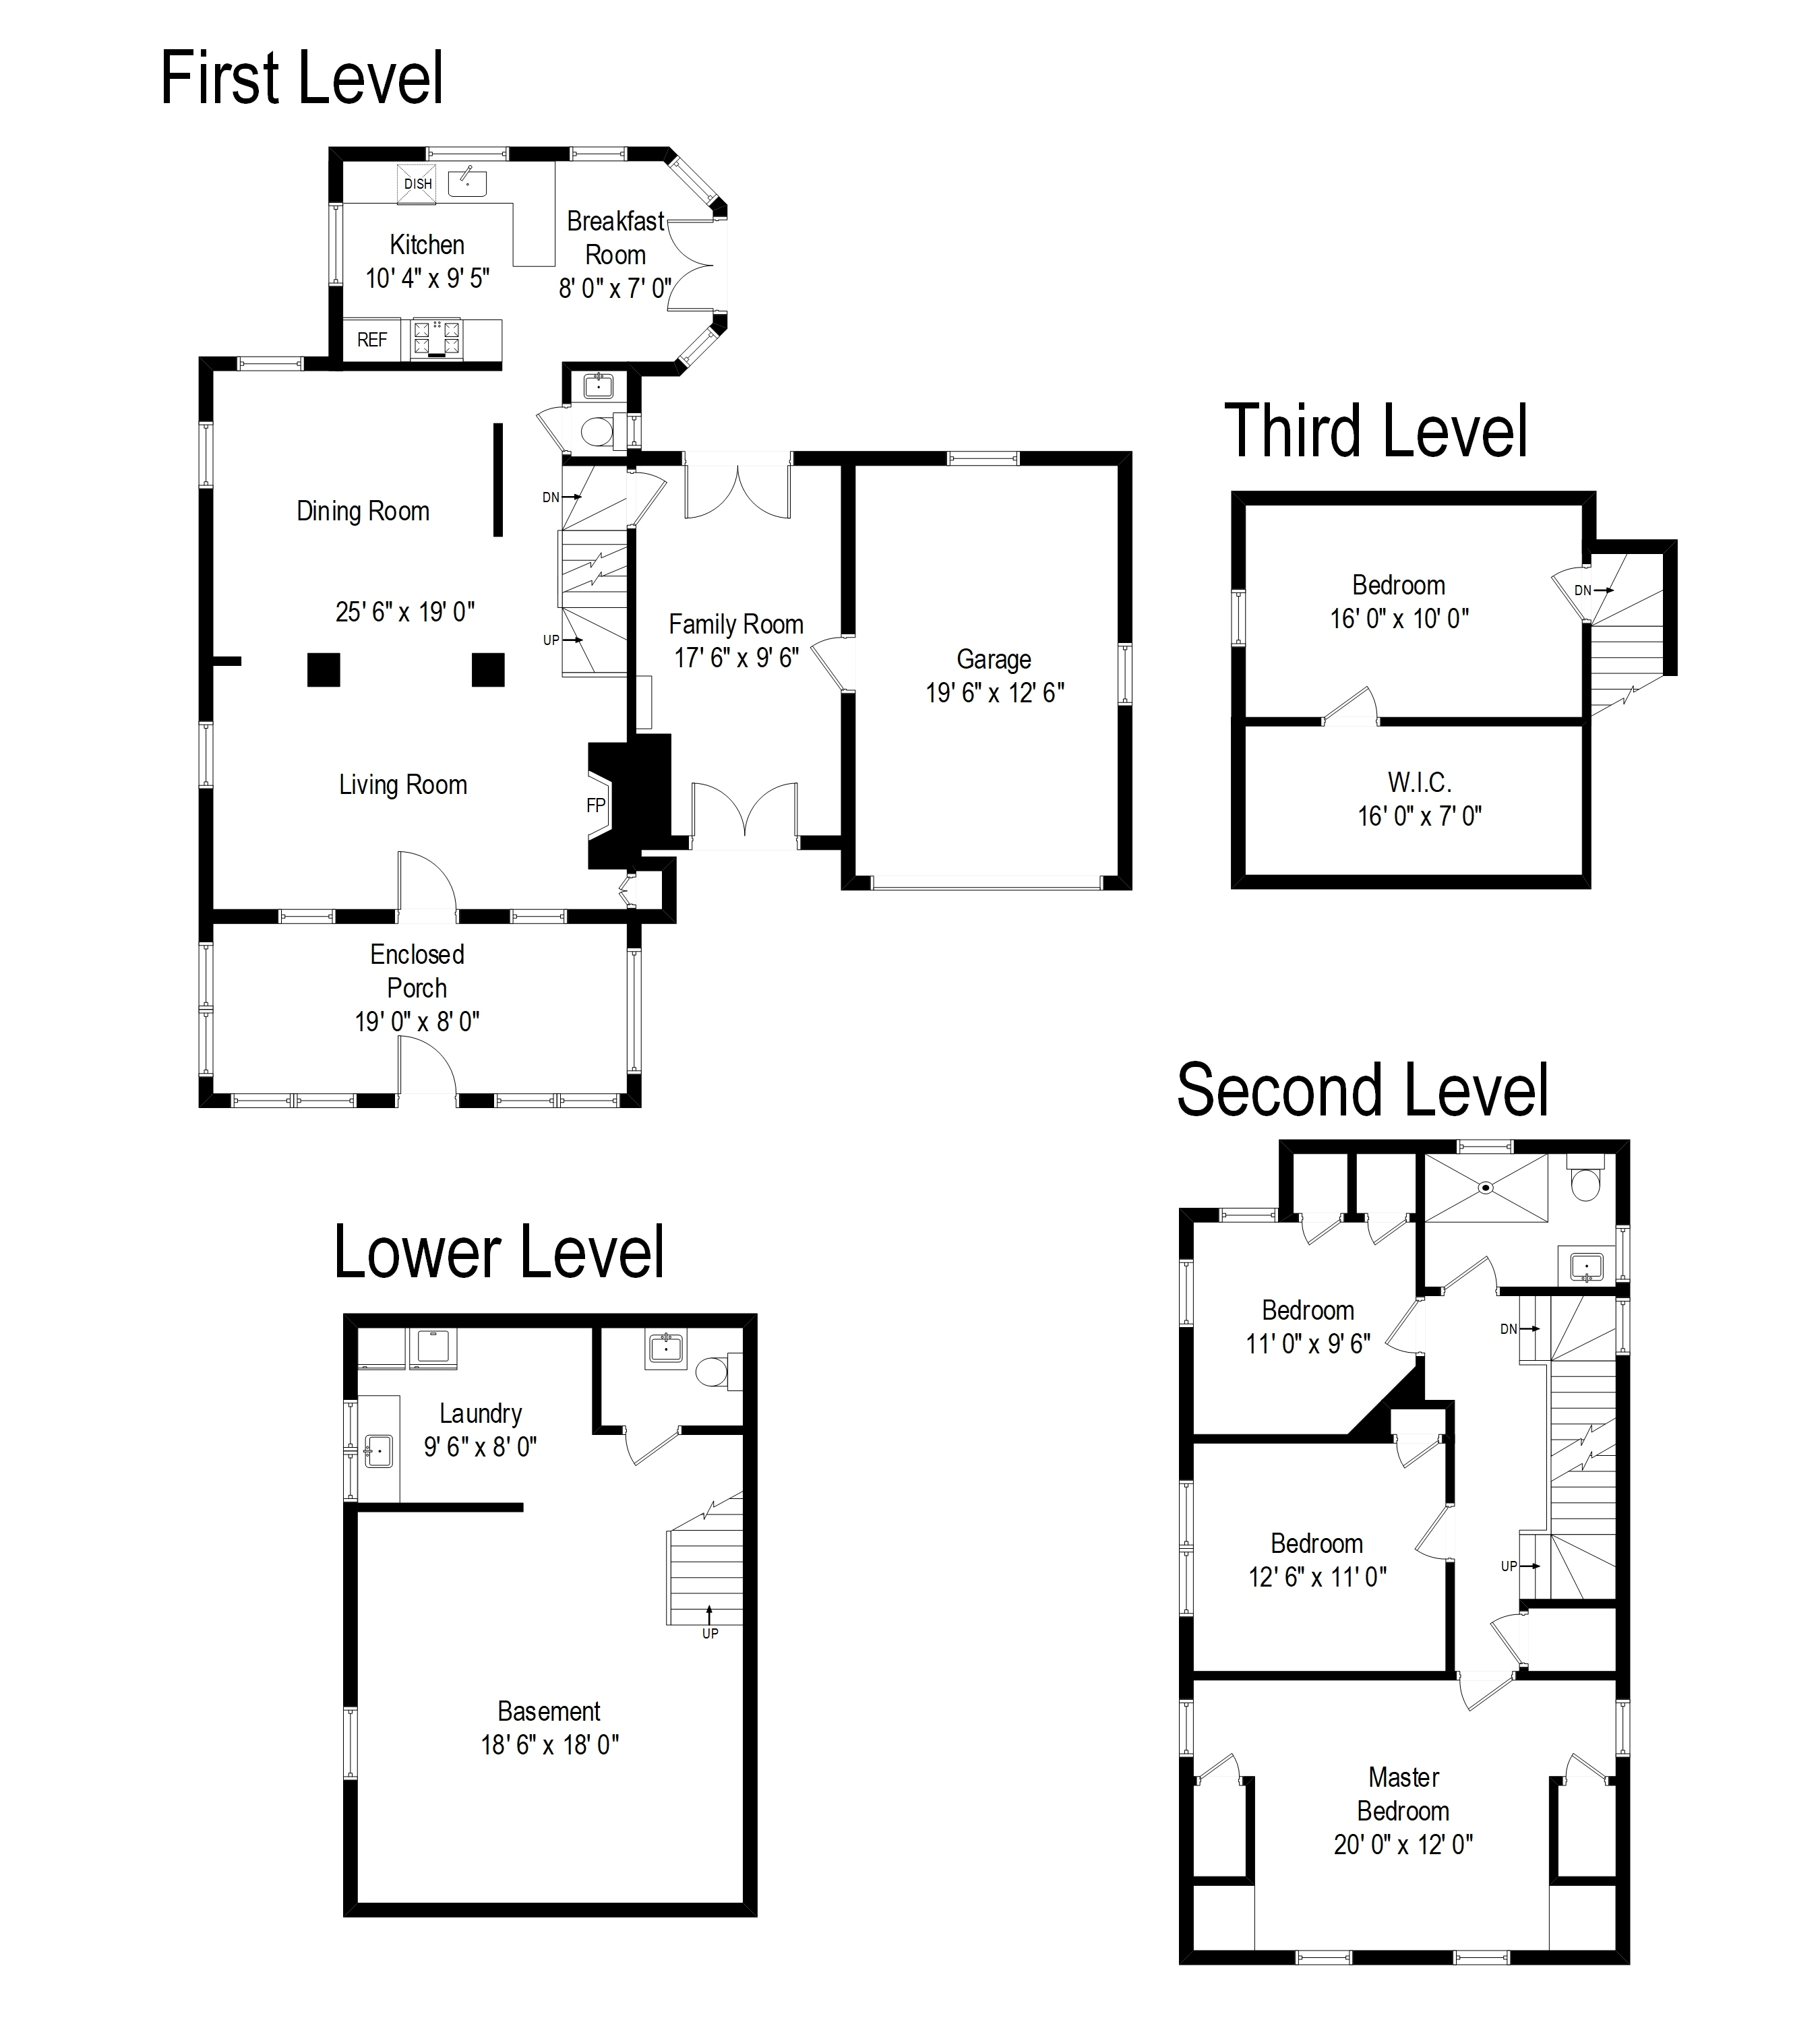 37_10StPaulsPlace_405_FloorPlan_HiRes